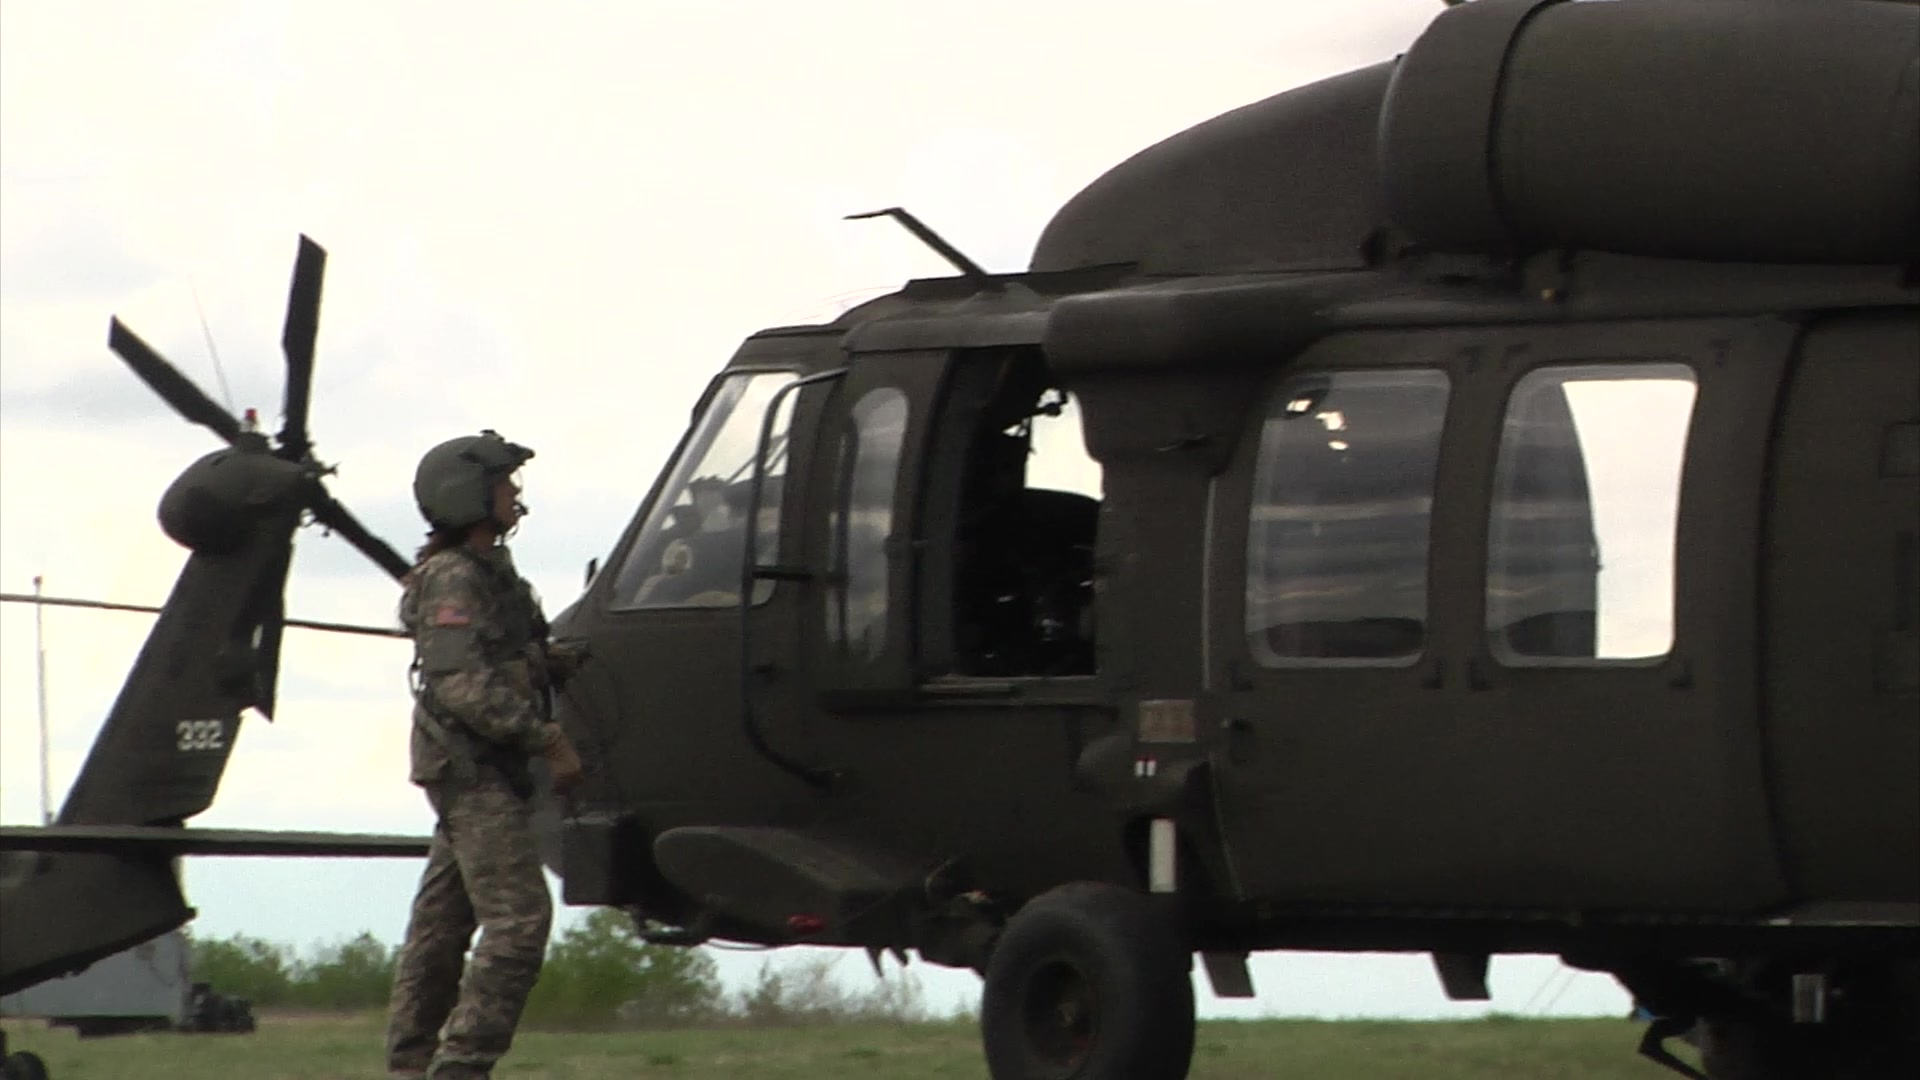 Medevac crews from Charlie Company 1/169 Aviation conduct training during Maple Resolve 17.